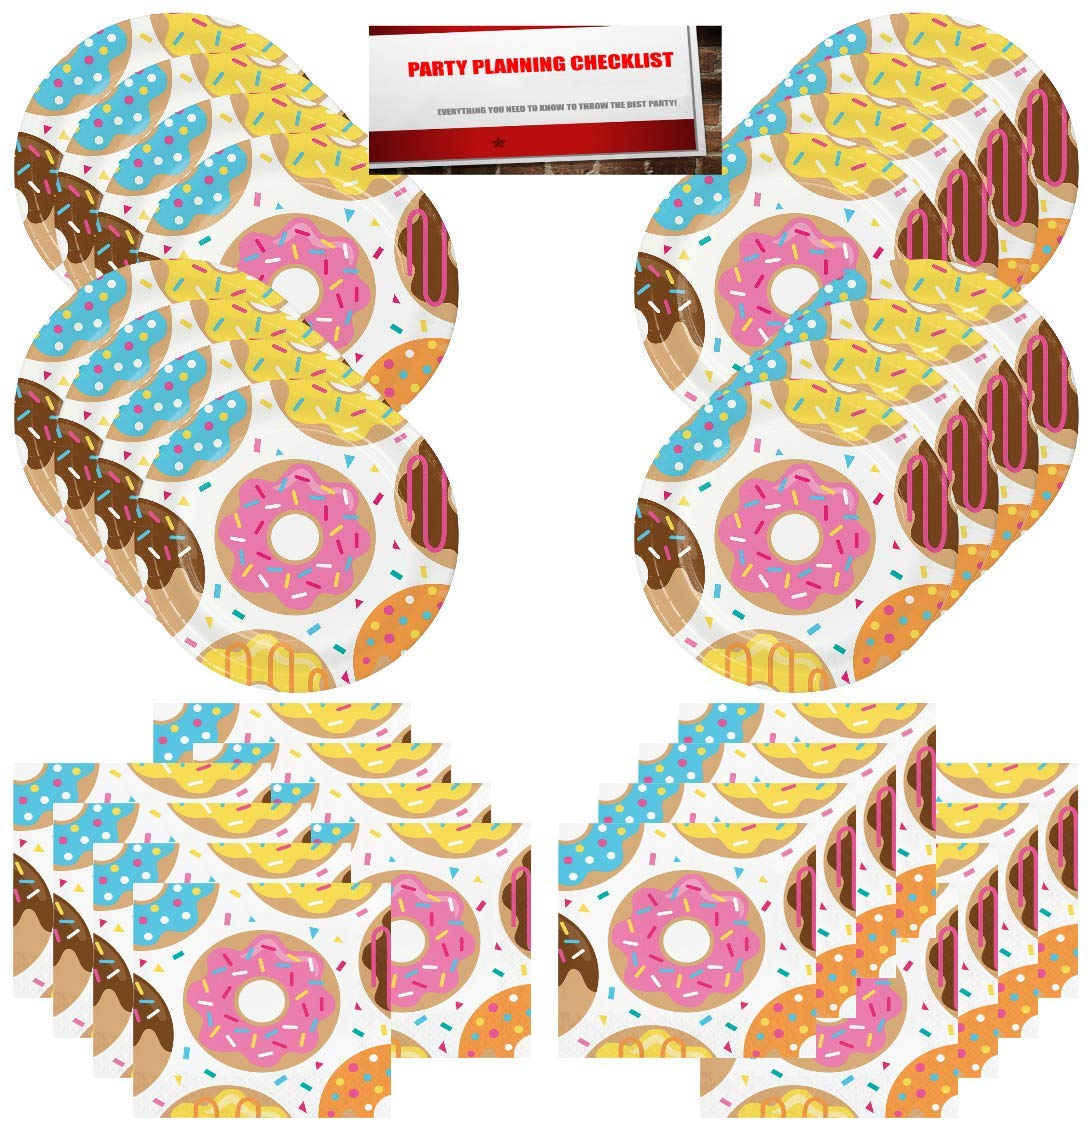 Plus Party Planning Checklist by Mikes Super Store Donut Party Supplies Bundle Pack for 16 Guests